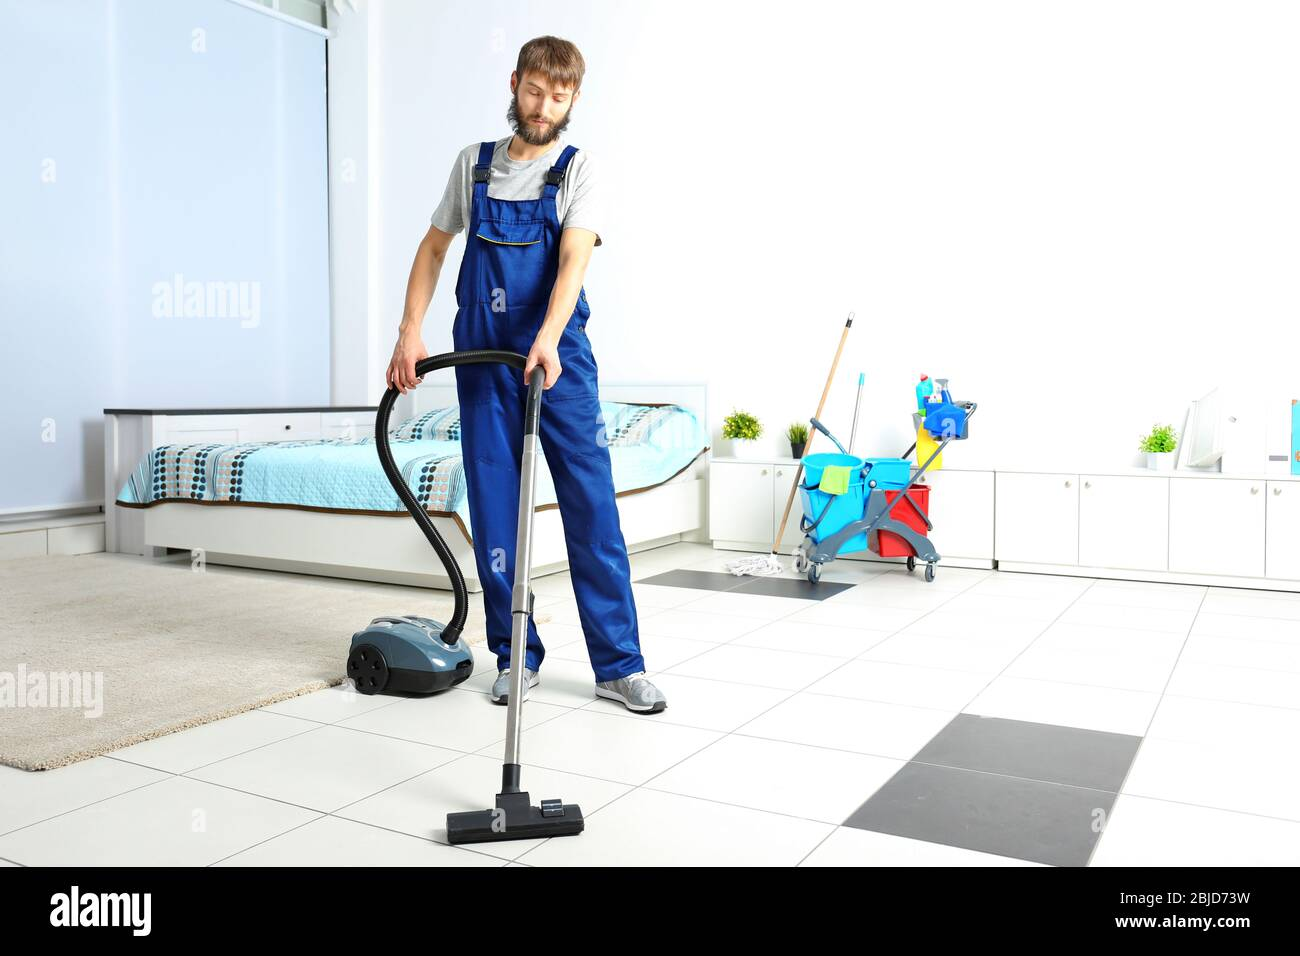 Man Vacuum Cleaner Funny High Resolution Stock Photography And Images Alamy